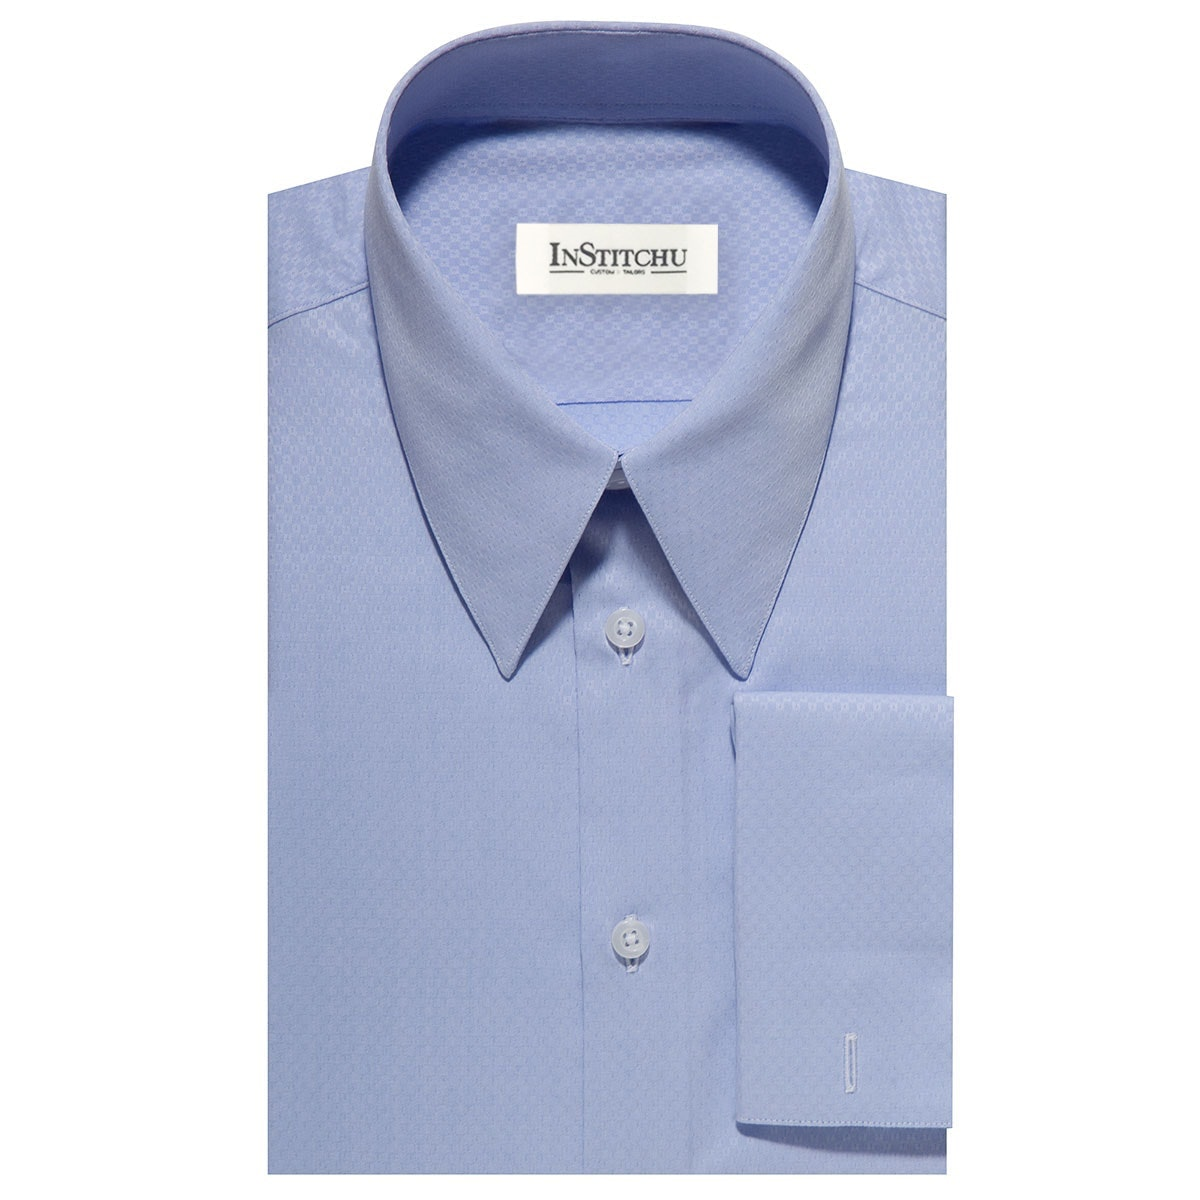 InStitchu Collection The Shores Blue Shirt